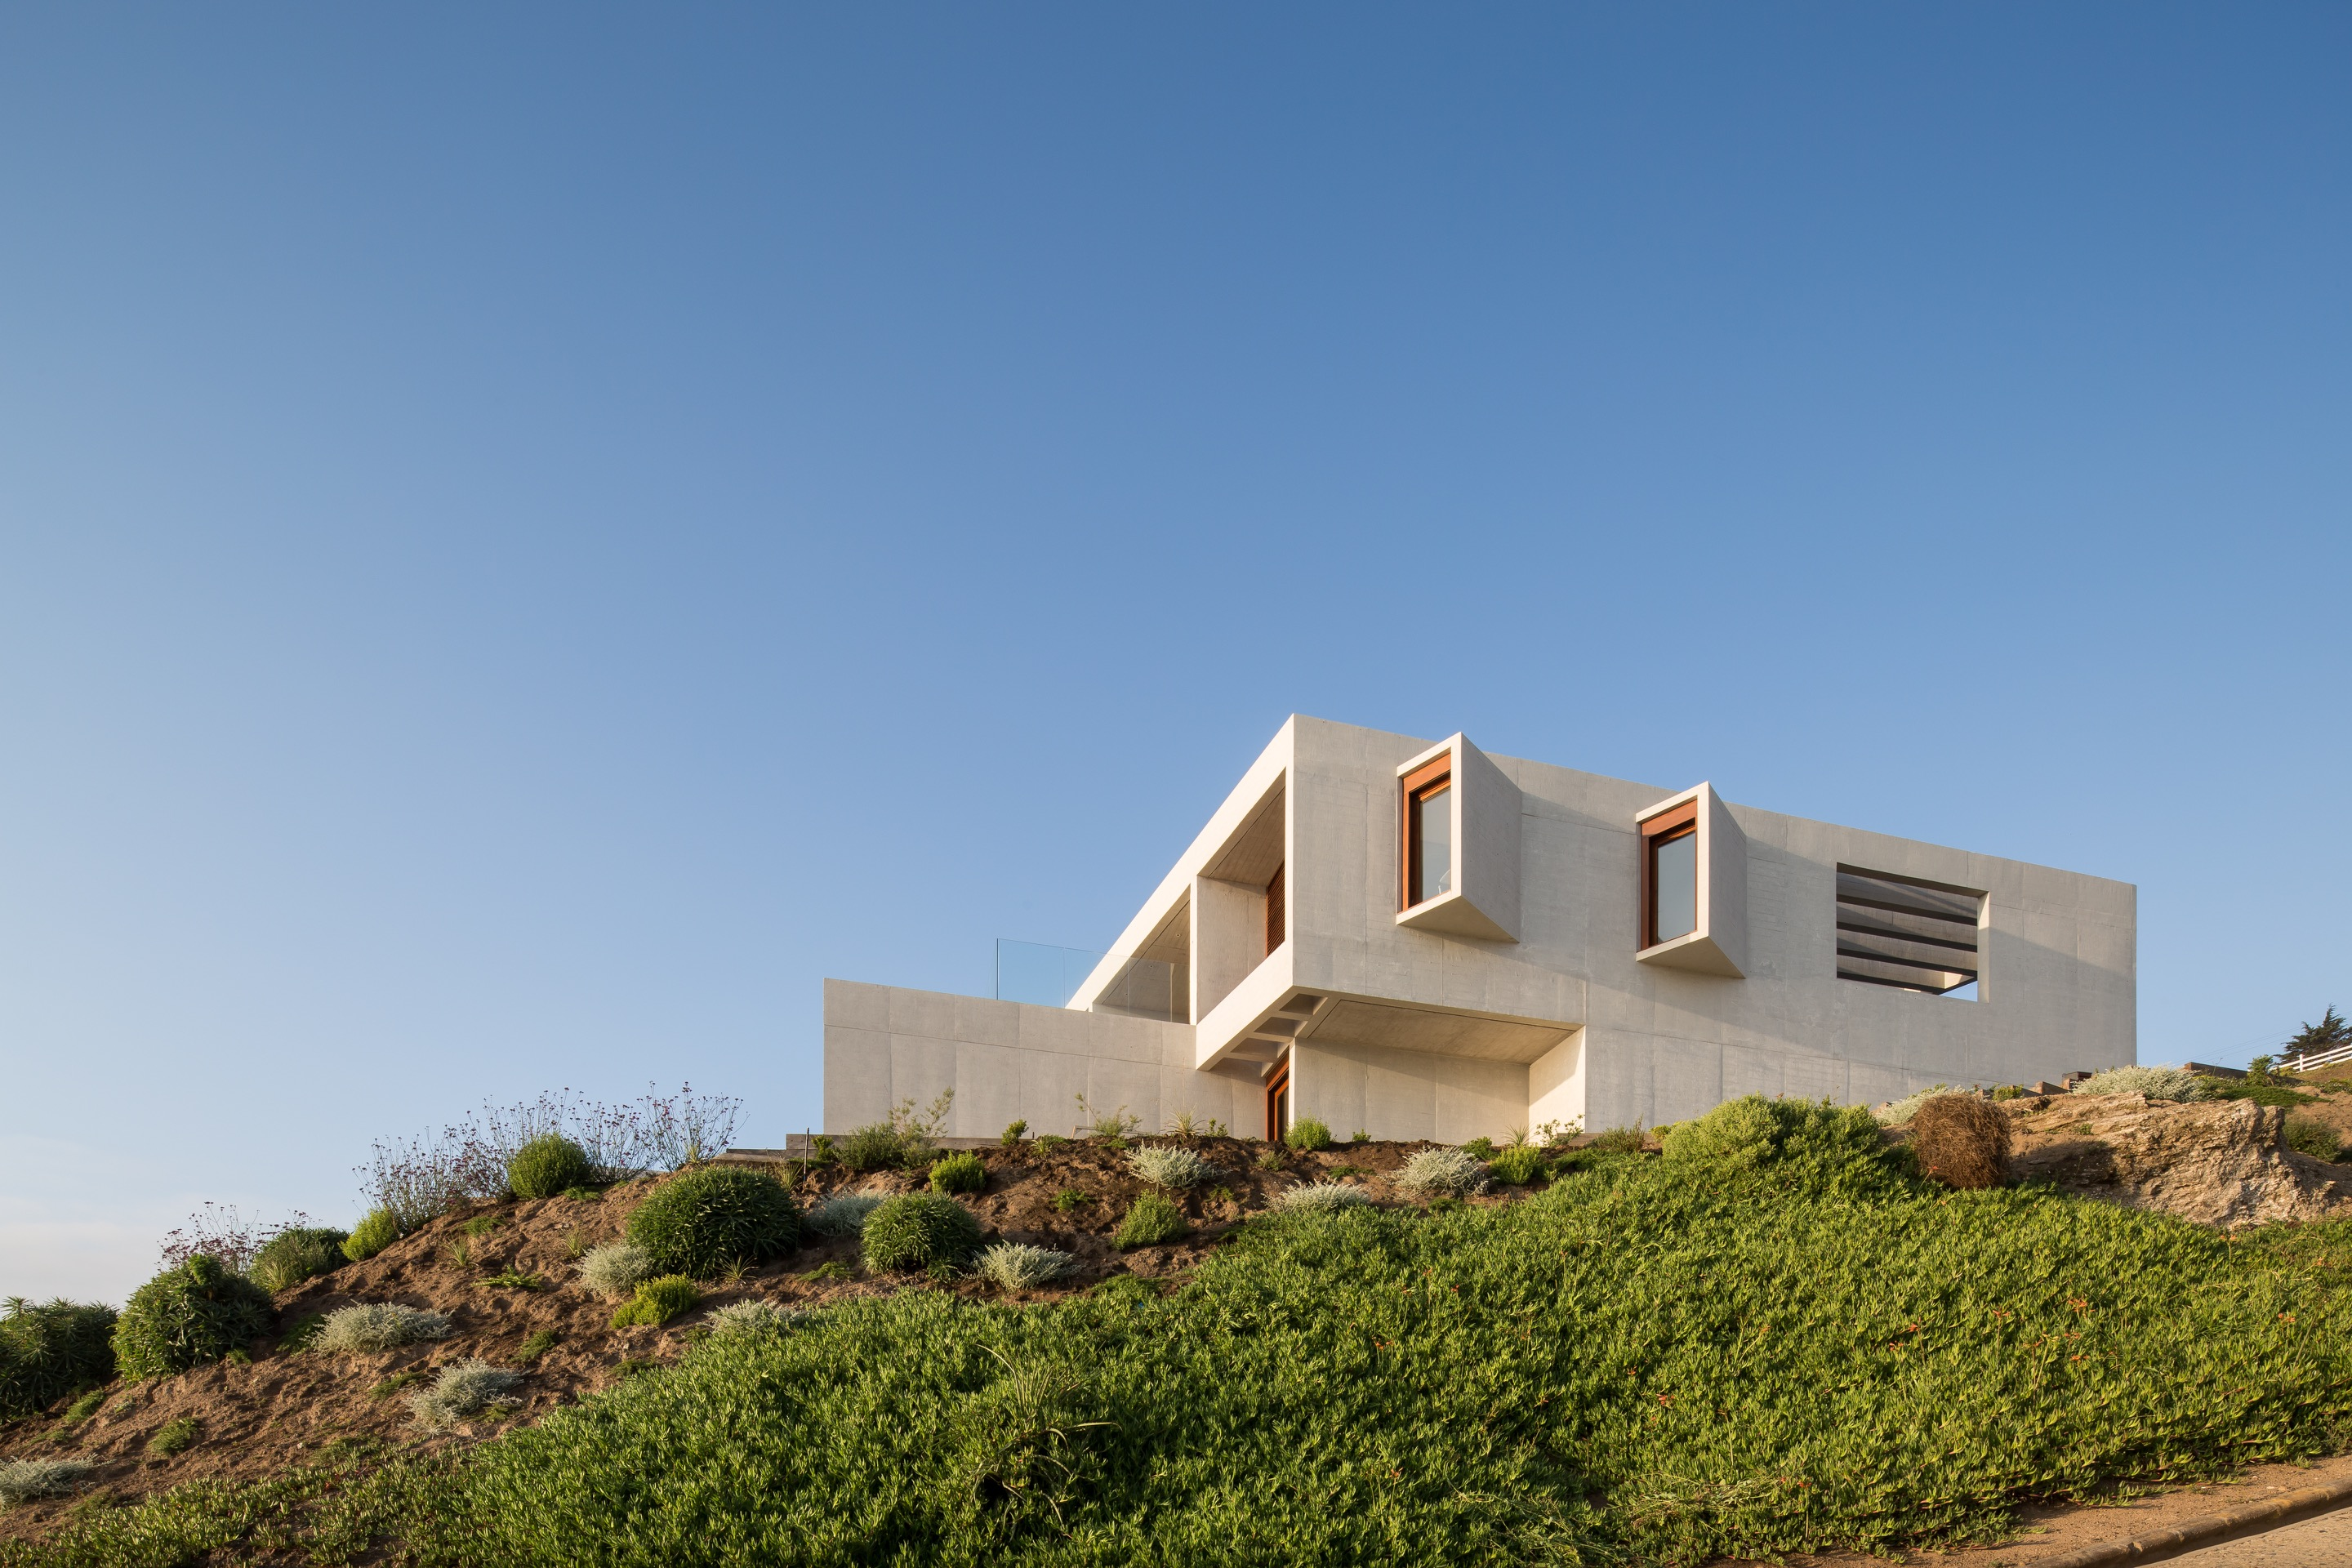 RT House by Gonzalo Mardones Viviani